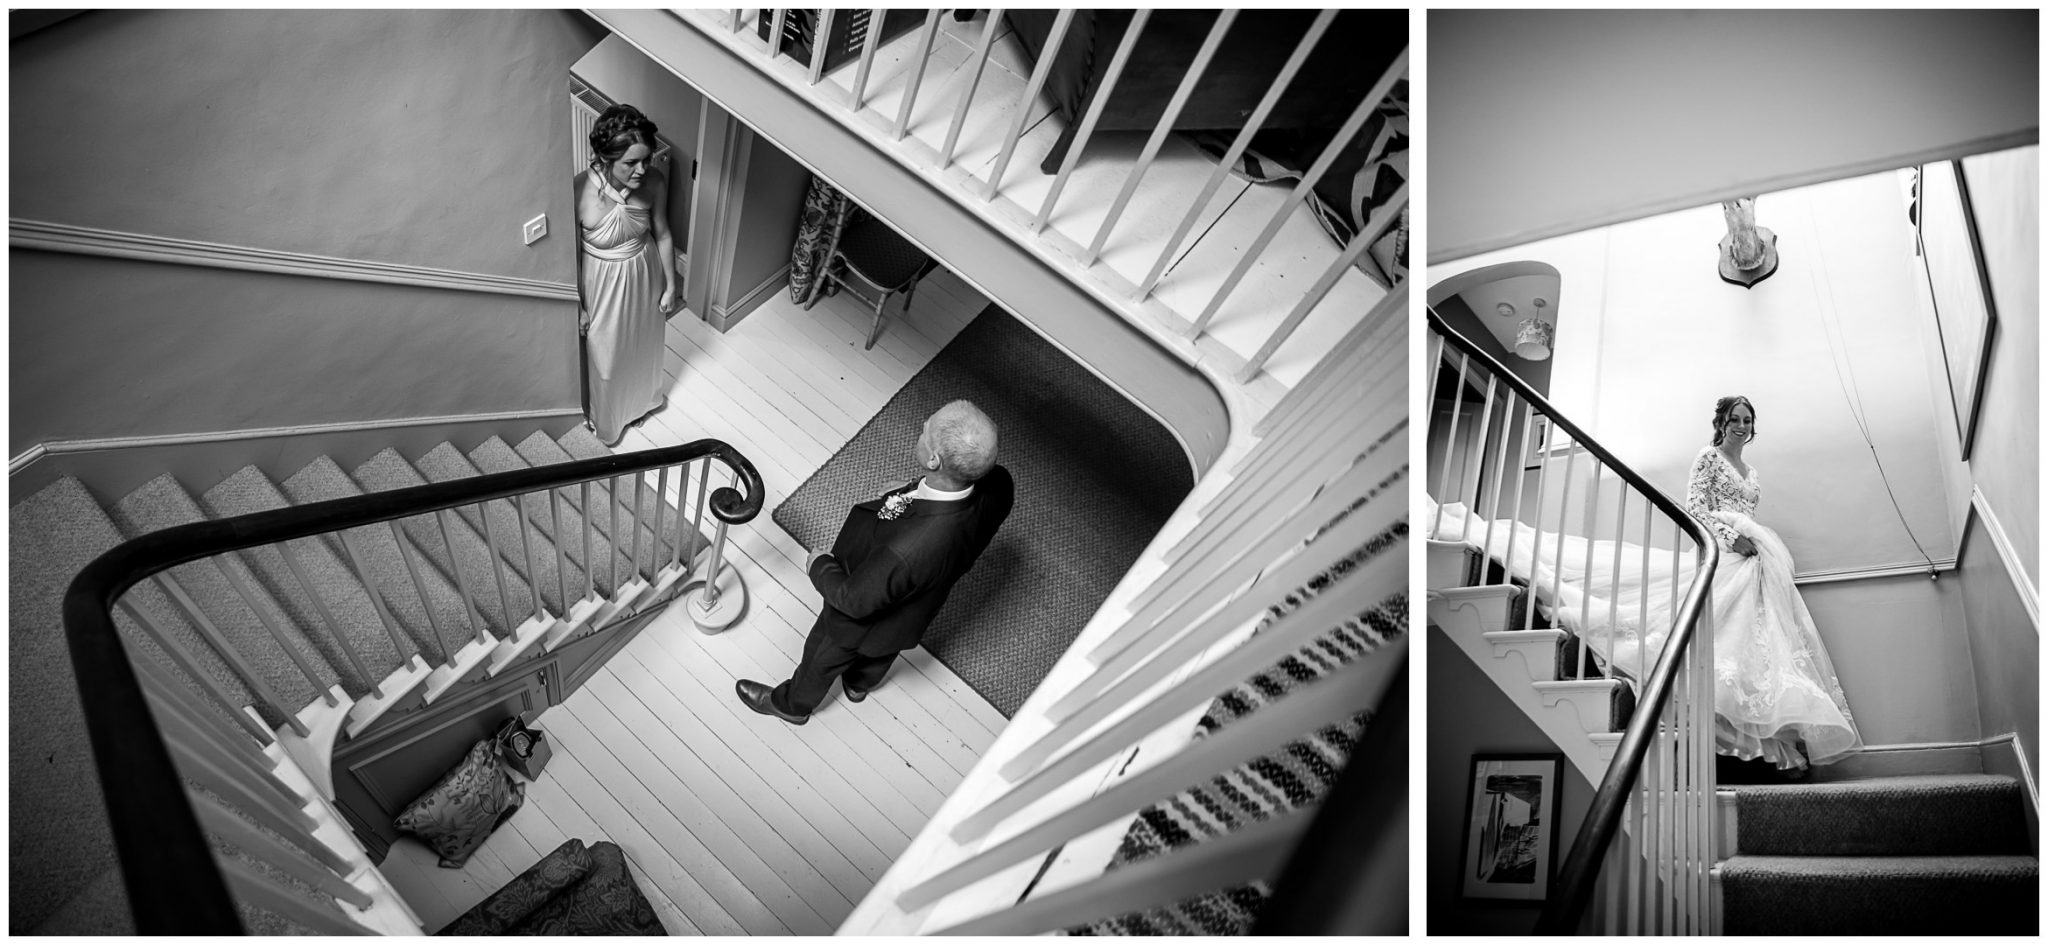 The bride comes down the stairs